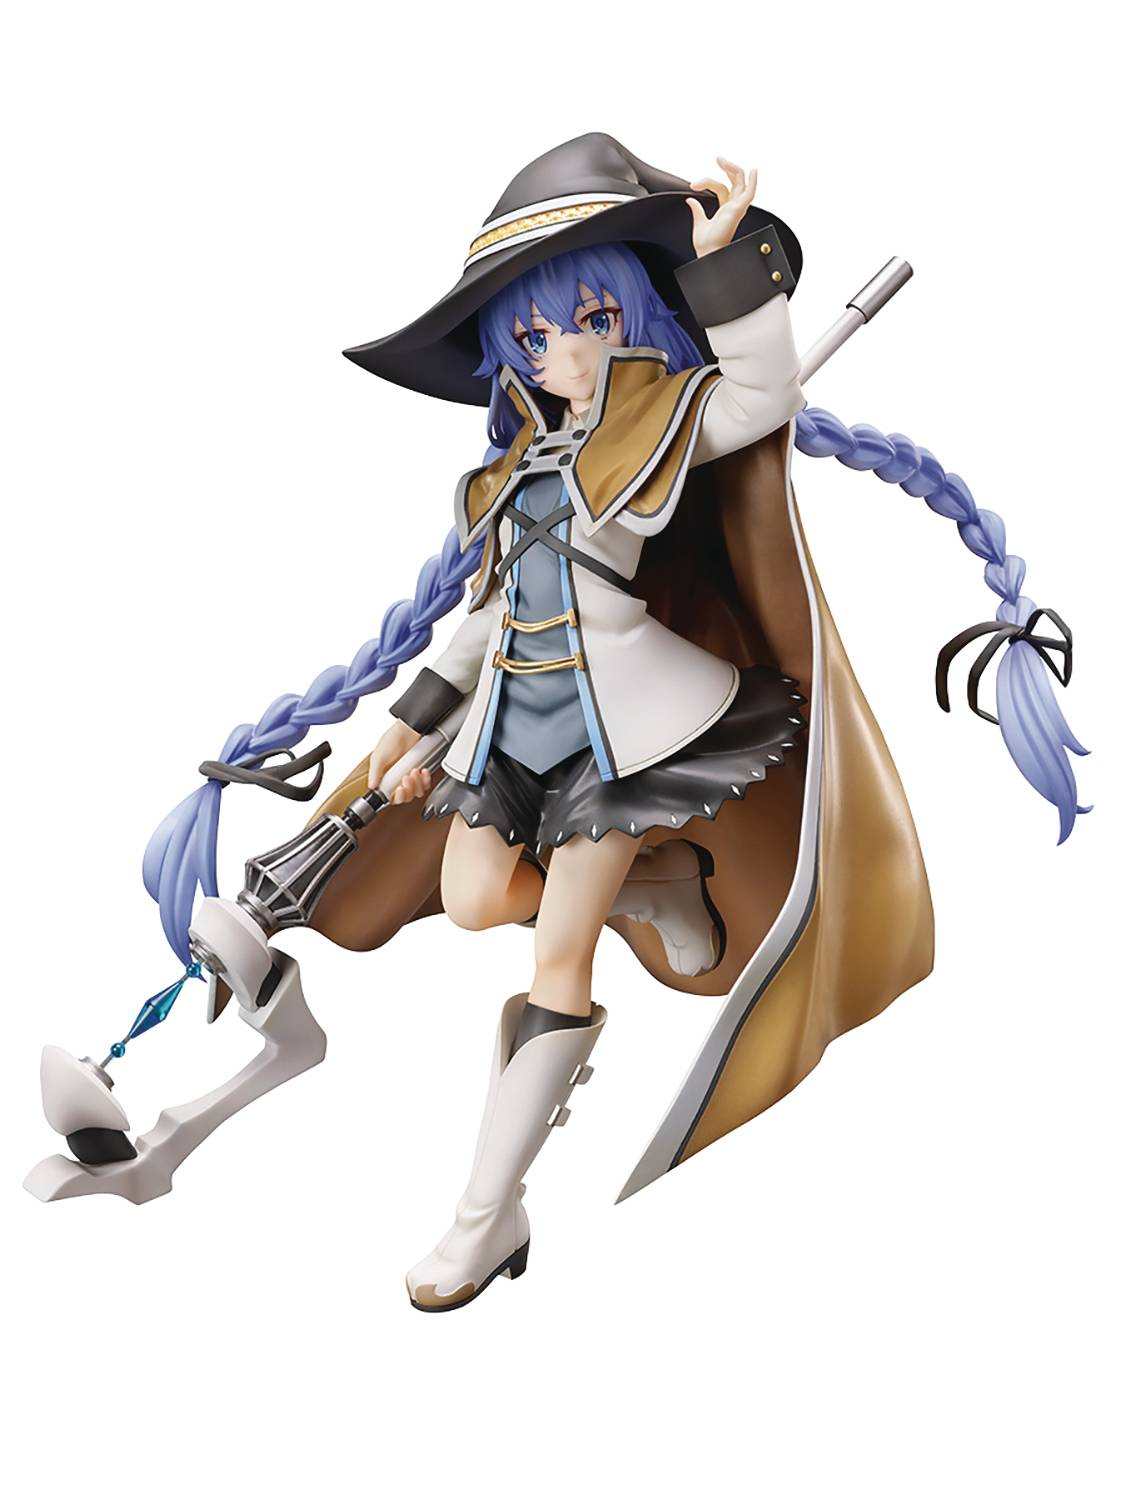 MUSHOKU TENSEI JOBLESS REINCARNATION ROXY 1/7 PVC FIGURE